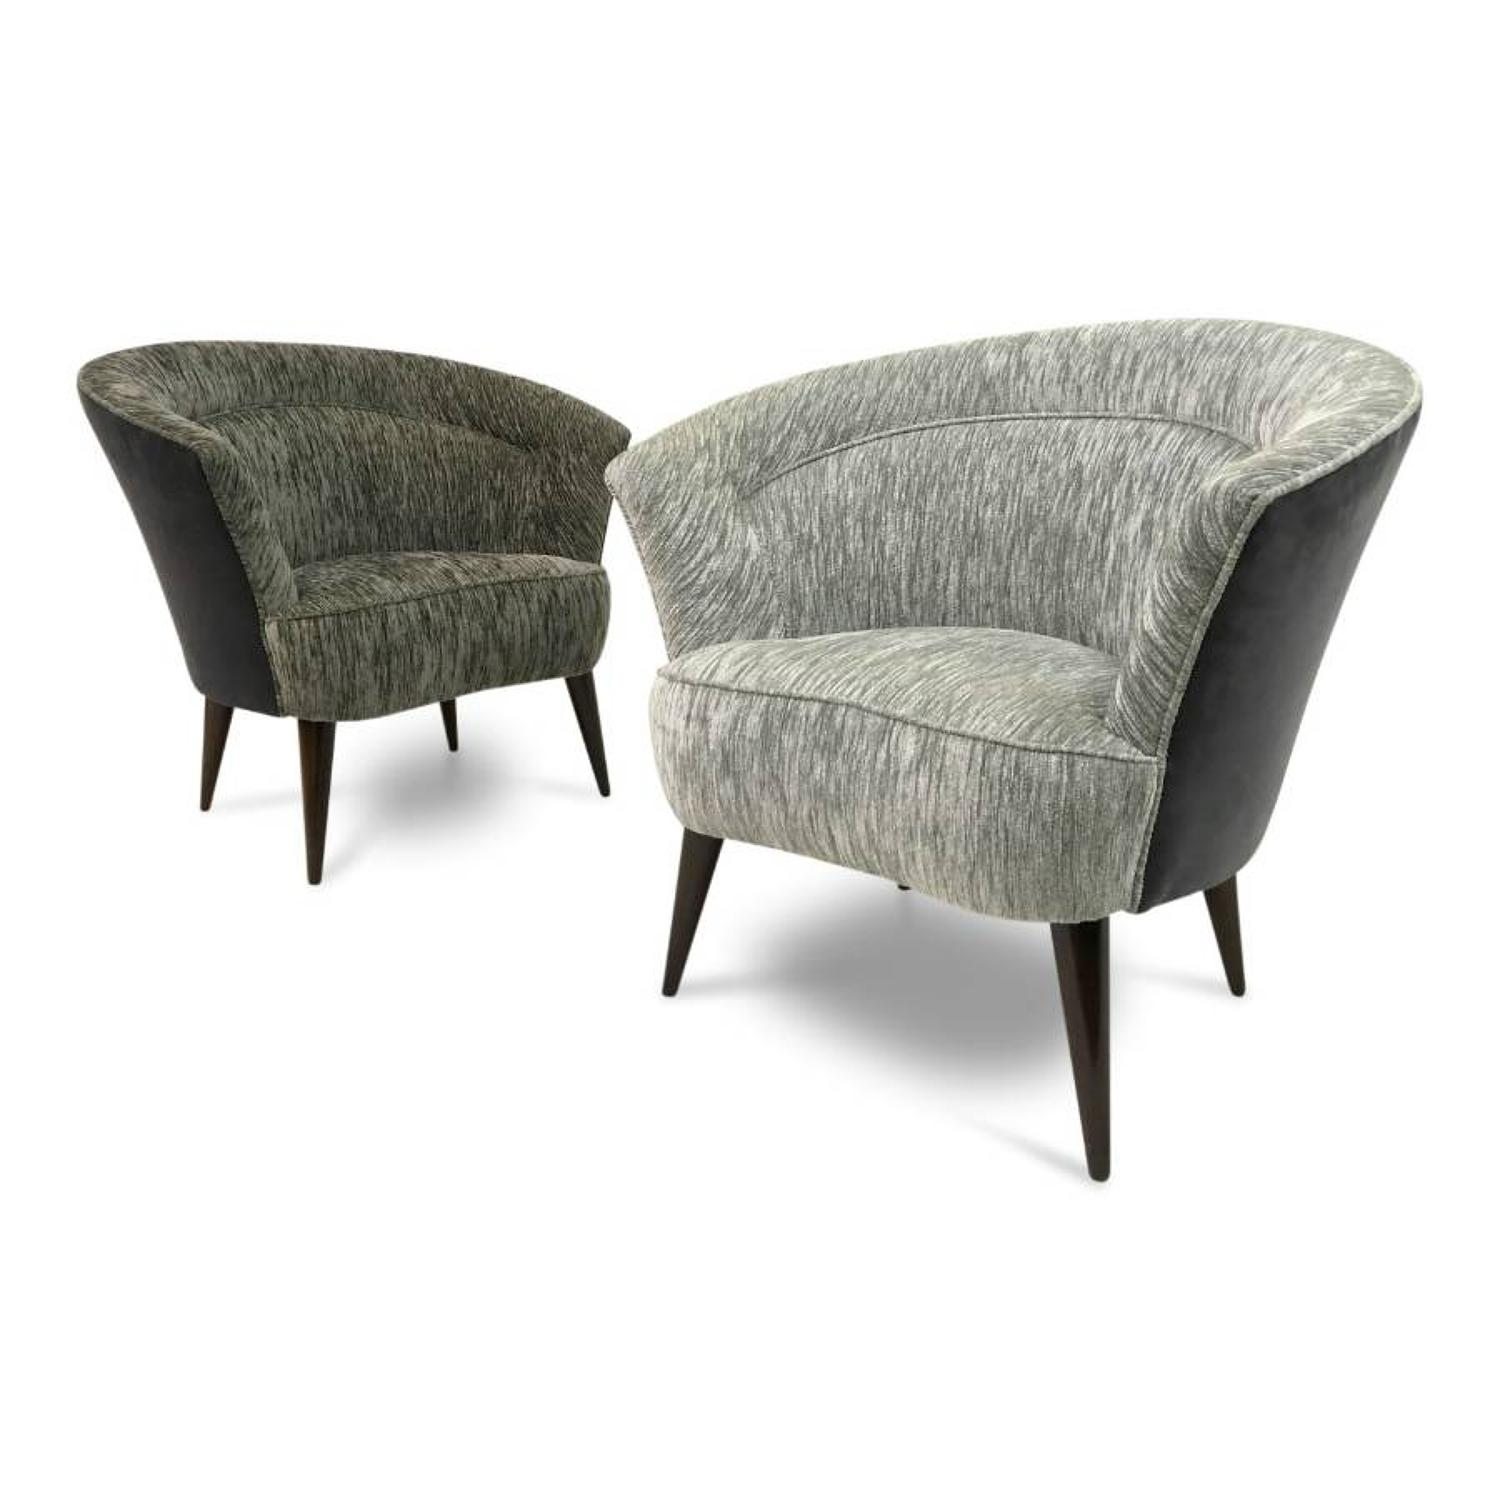 A pair of 1950s Italian tub armchairs